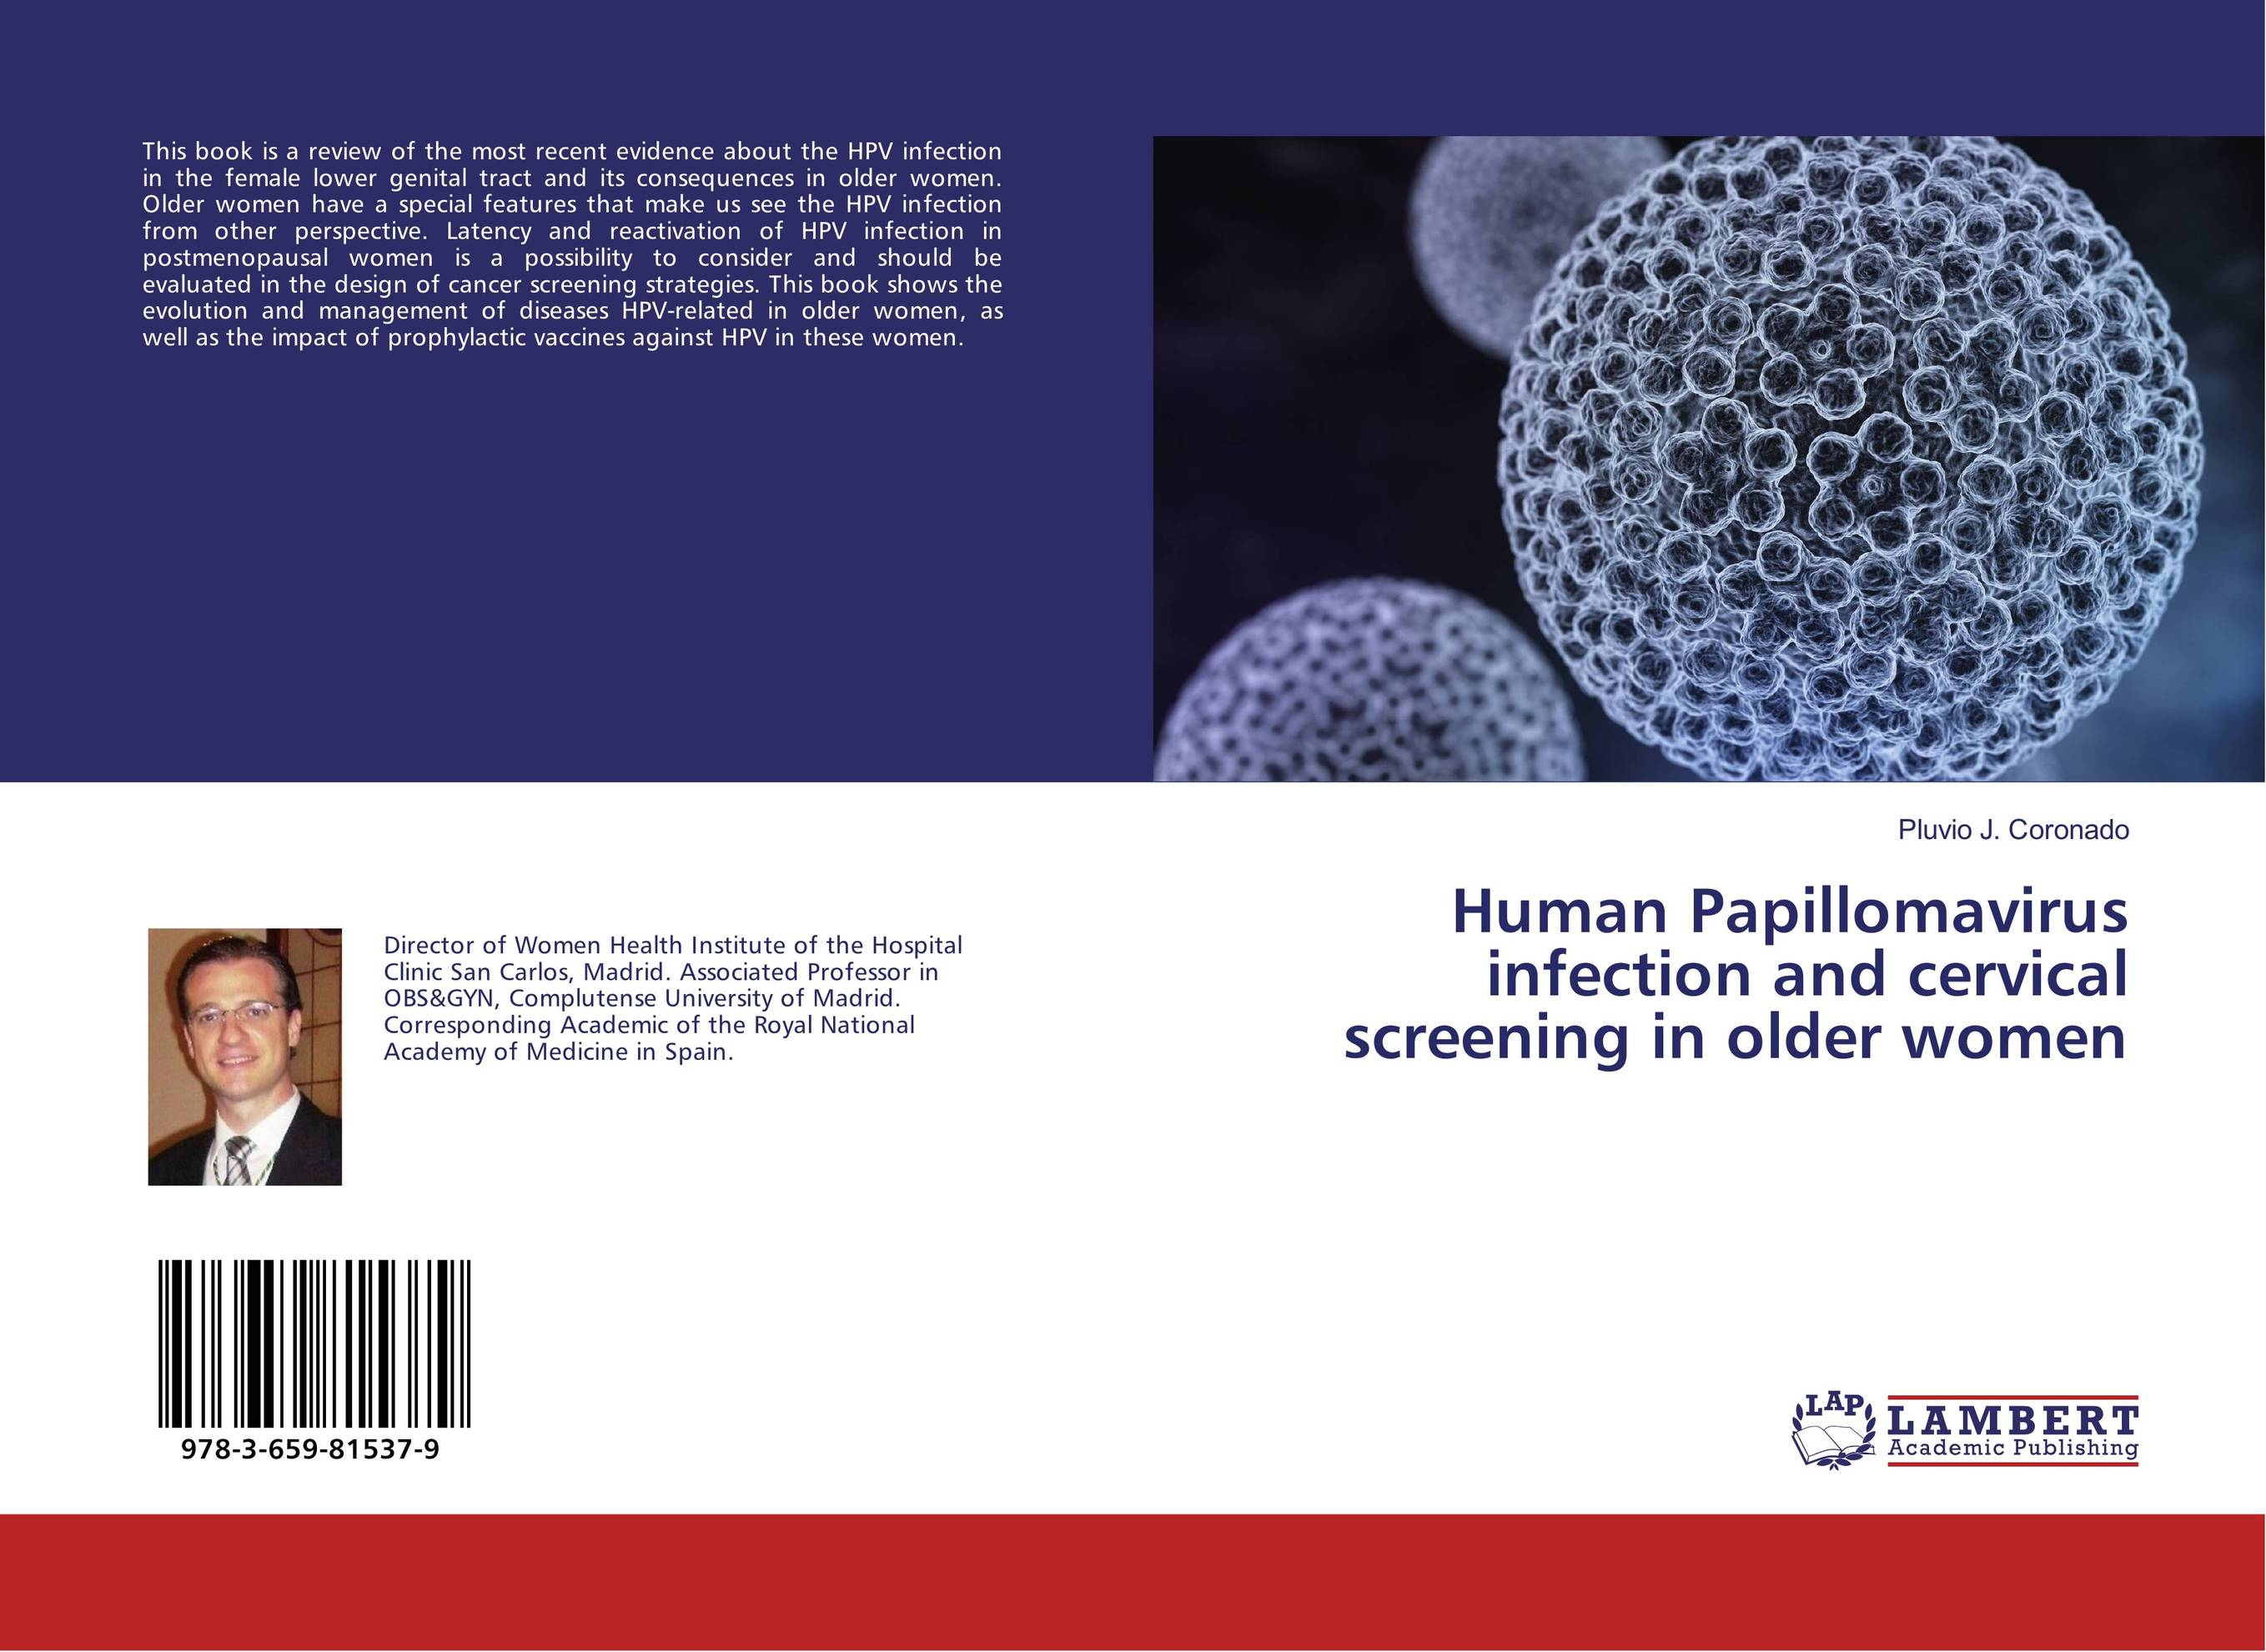 Фото Human Papillomavirus infection and cervical screening in older women cervical cancer in amhara region in ethiopia